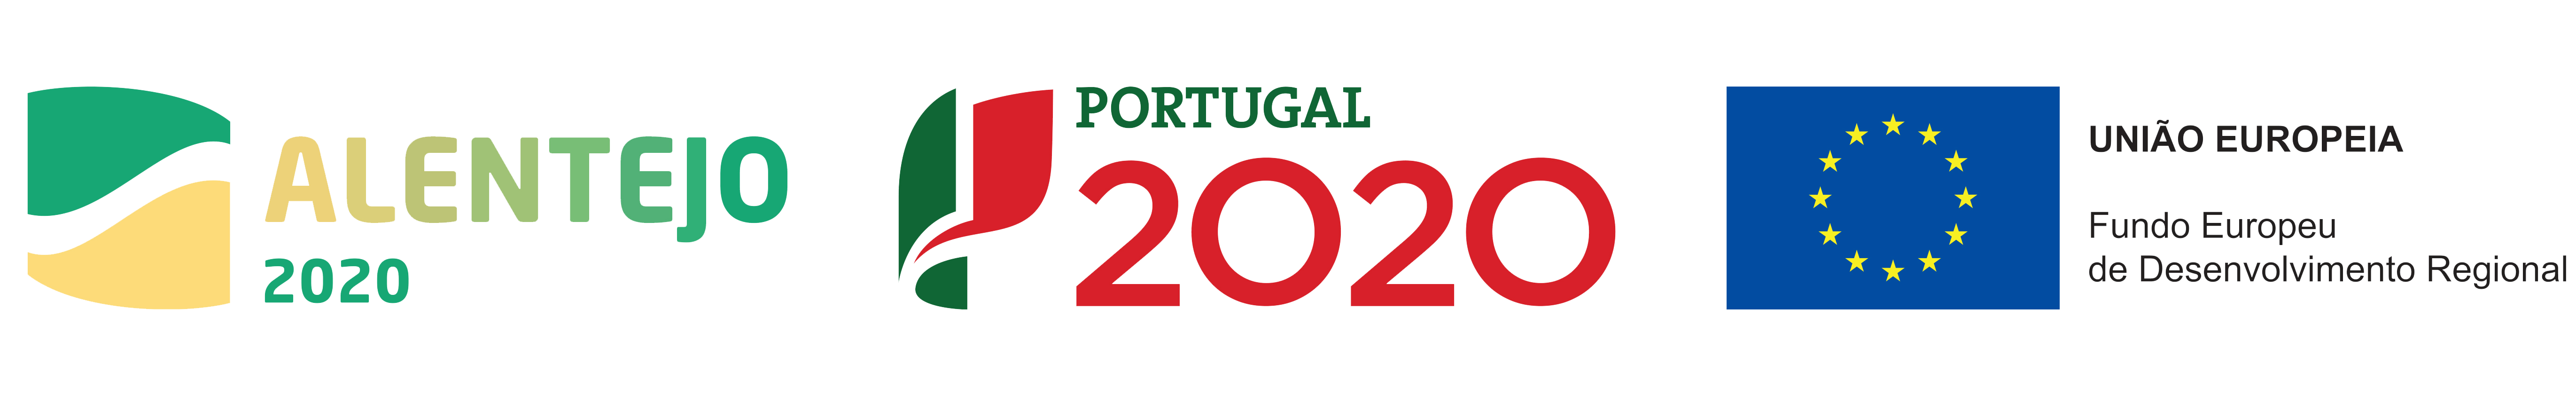 Barra cofinanciamento Portugal 2020